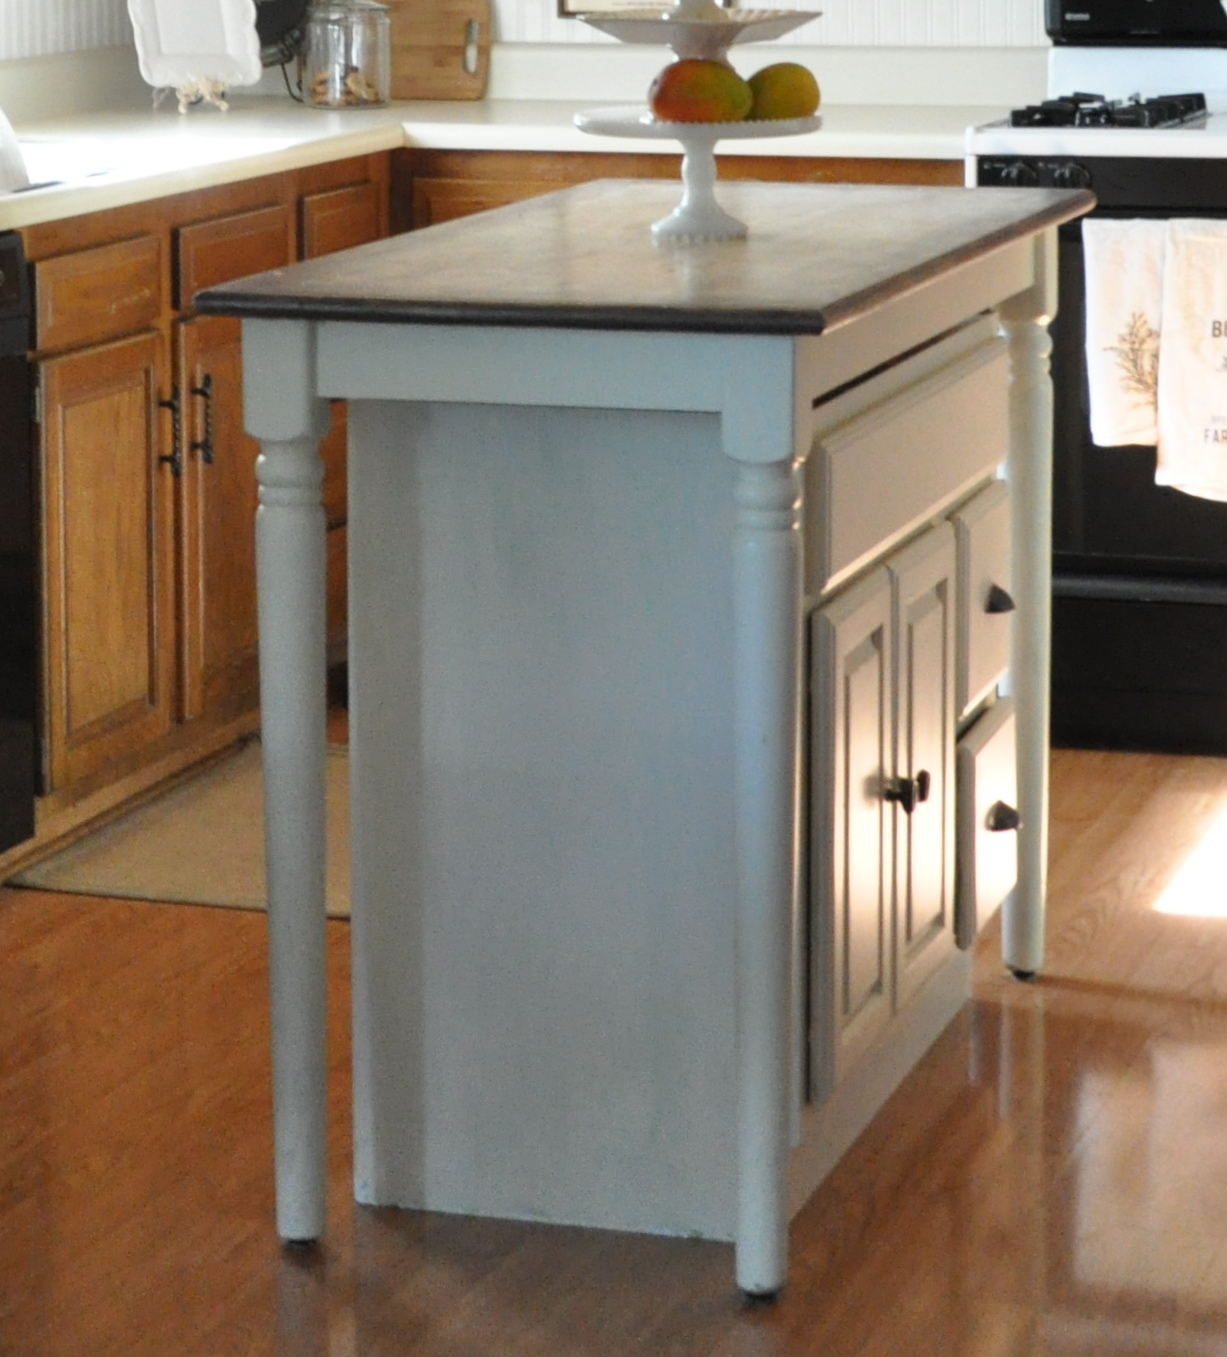 building kitchen island make kitchen table Paint a high table with a base cabient to make it look like a cohesive cabinet